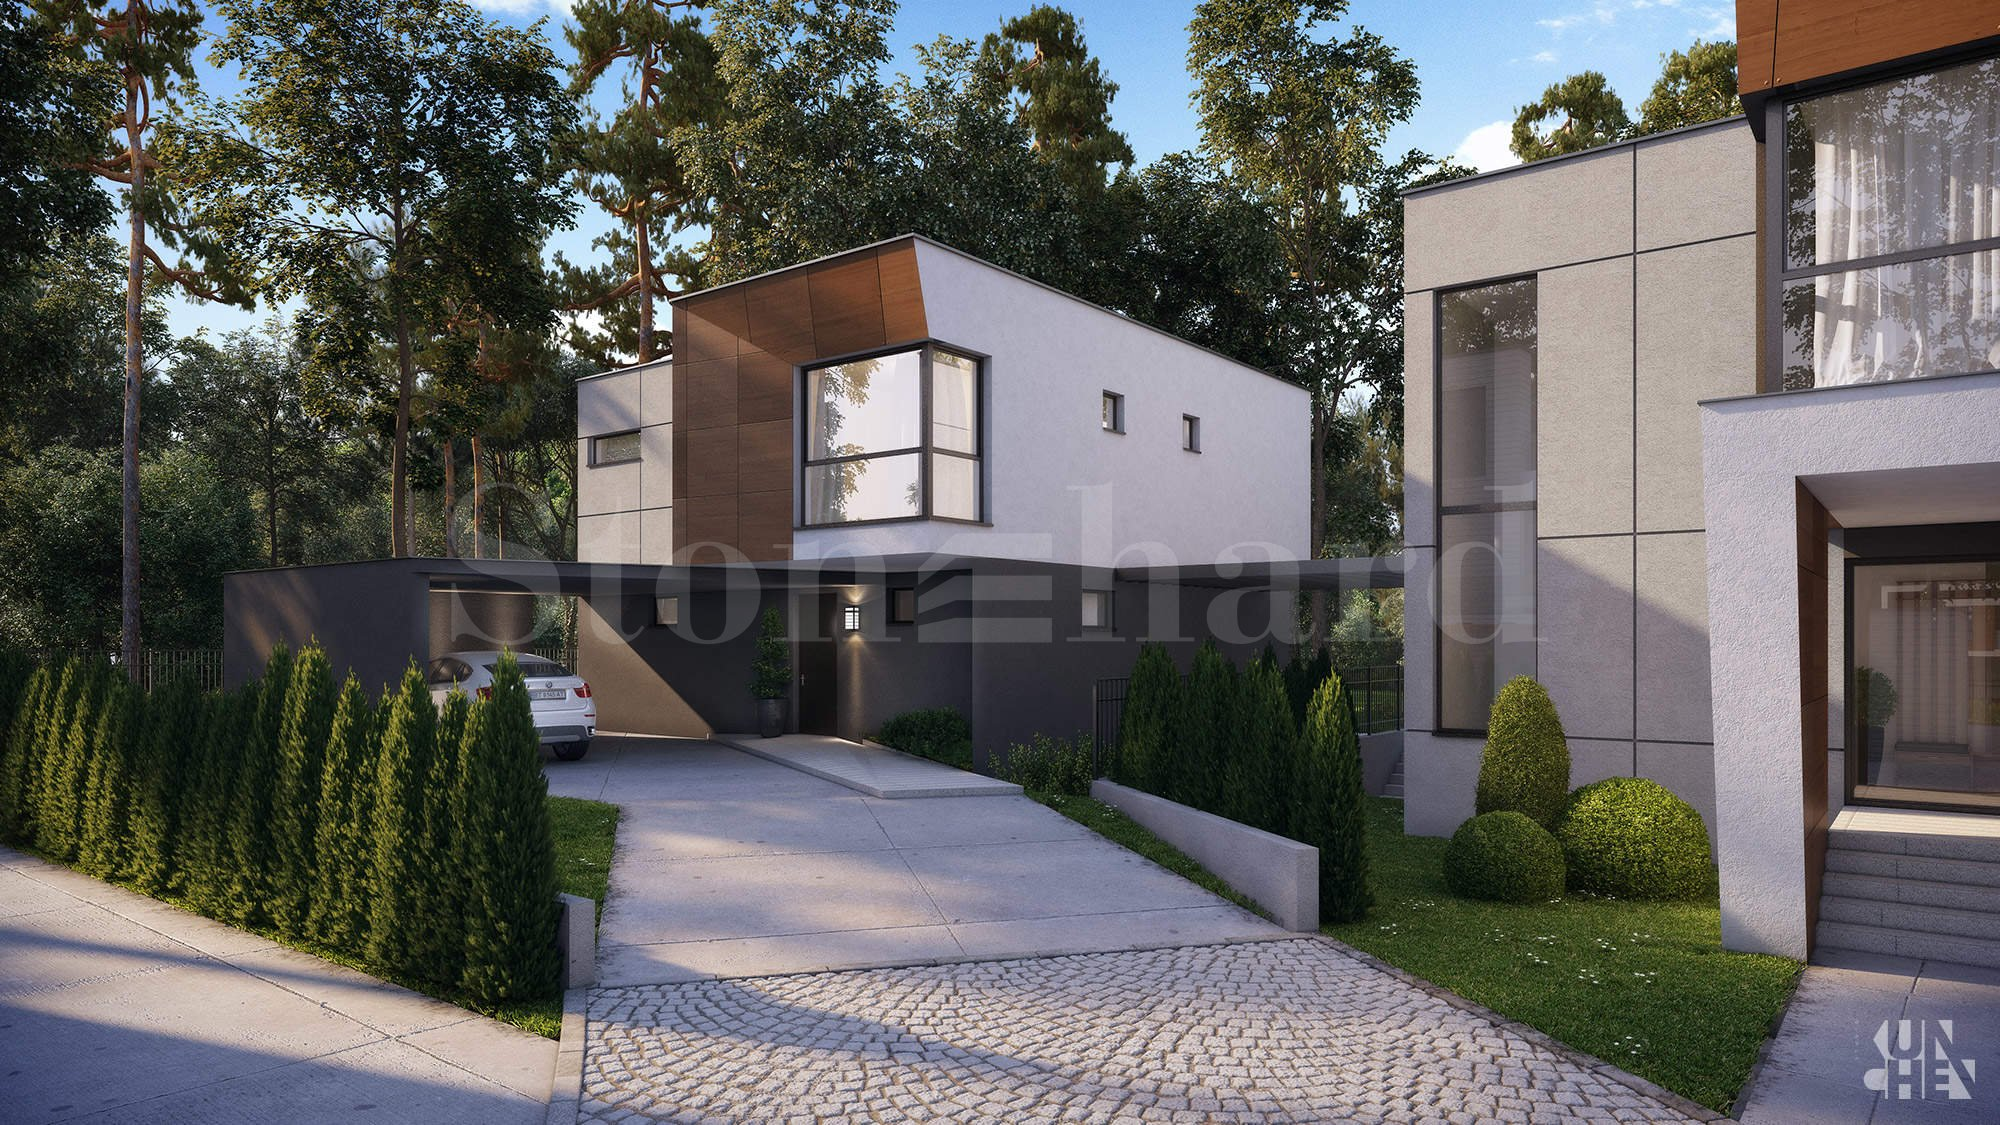 Luxurious development with houses close to the government residence Boyana 2 - Stonehard